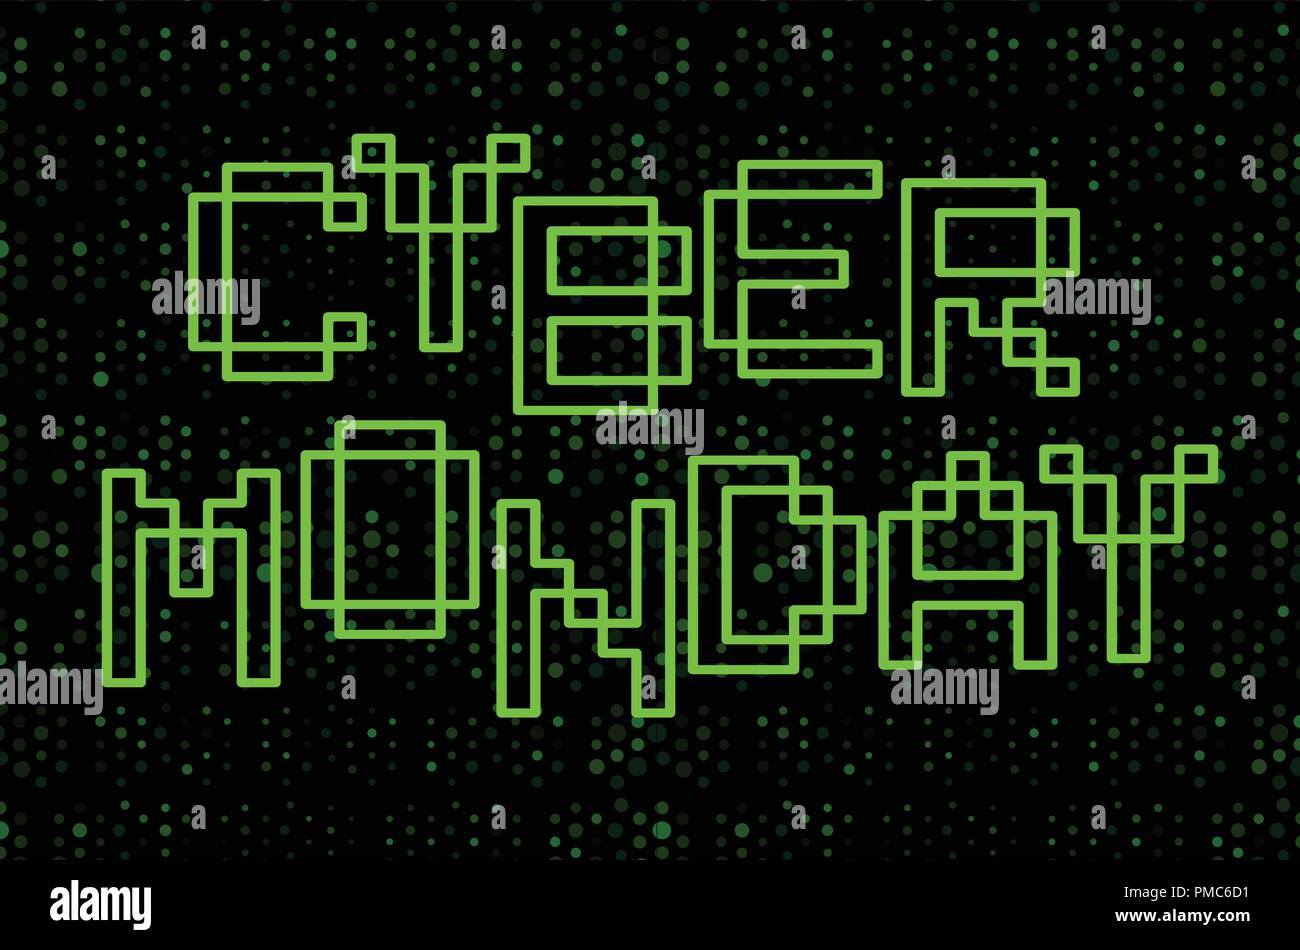 cyber monday text design green contour letters on black background